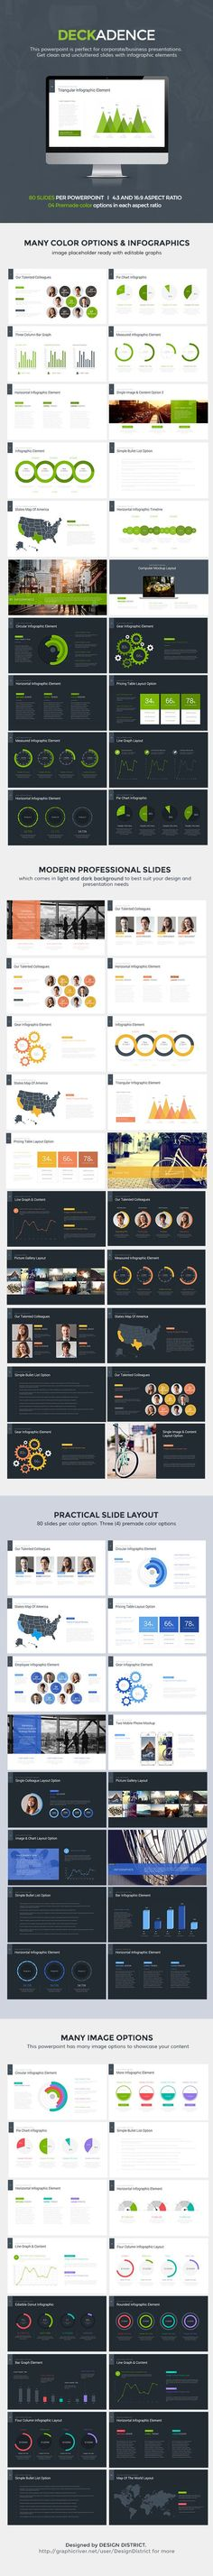 Decker Powerpoint Template PowerPoint Template / Theme / Presentation / Slides / Background / Power Point #powerpoint #template #theme: